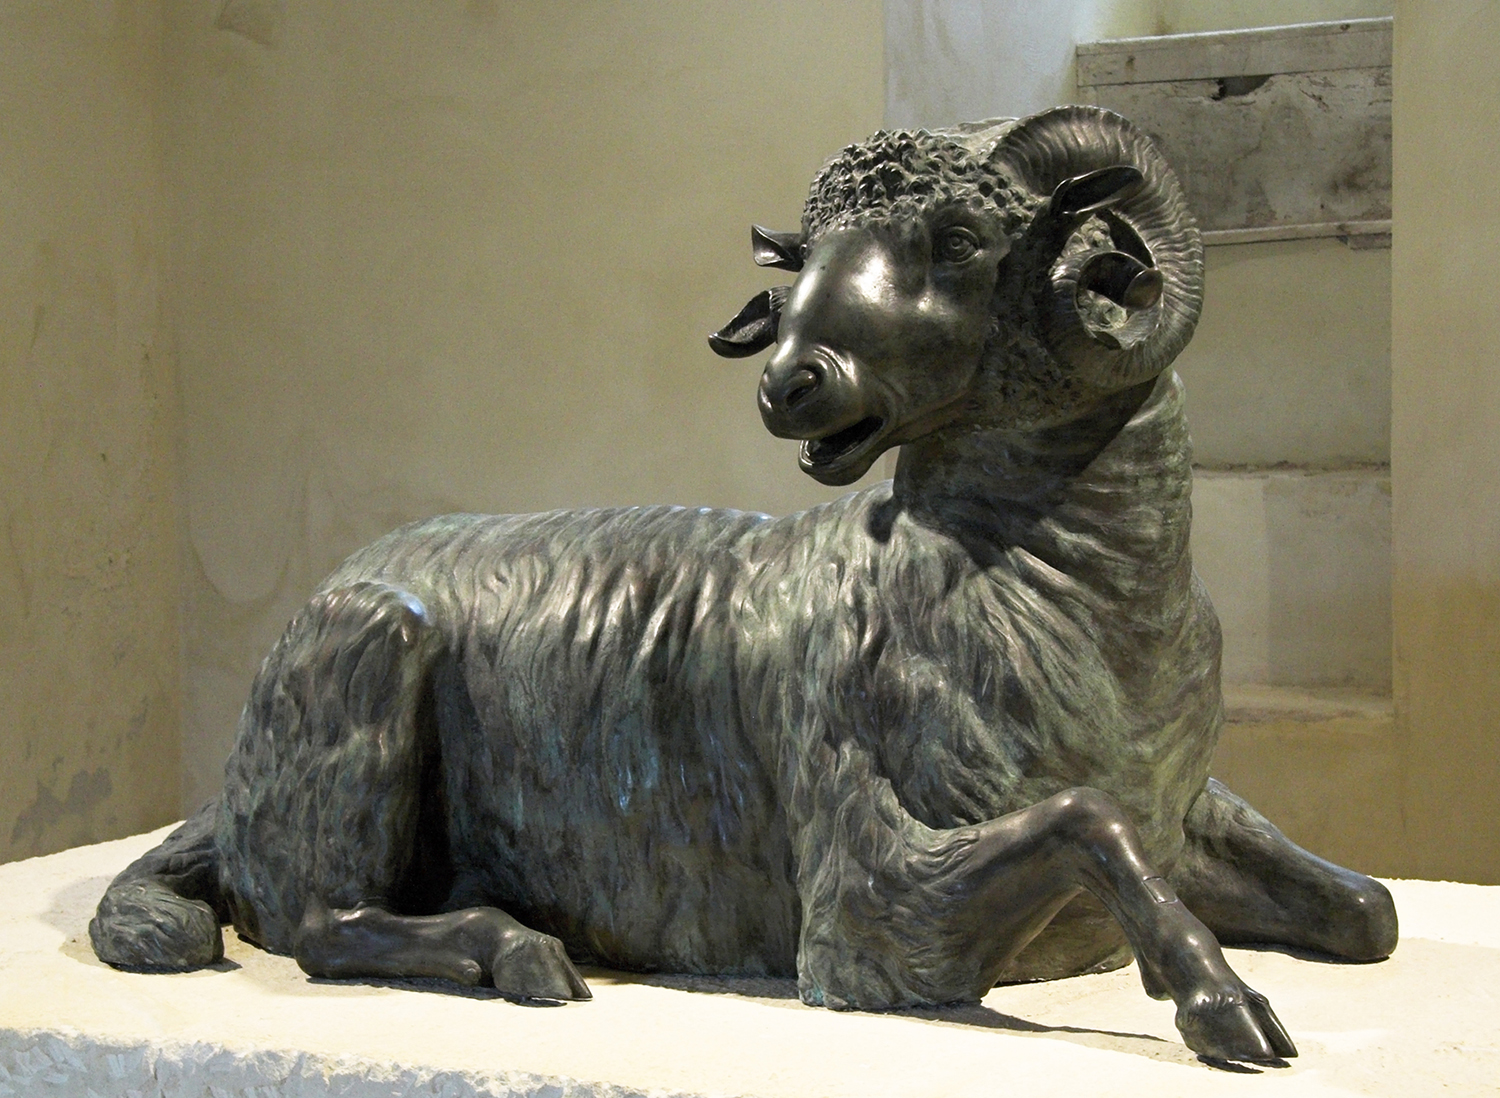 Ancient Bronze Indoor Decor Statue of Sitting Ram From 3rd Century BC